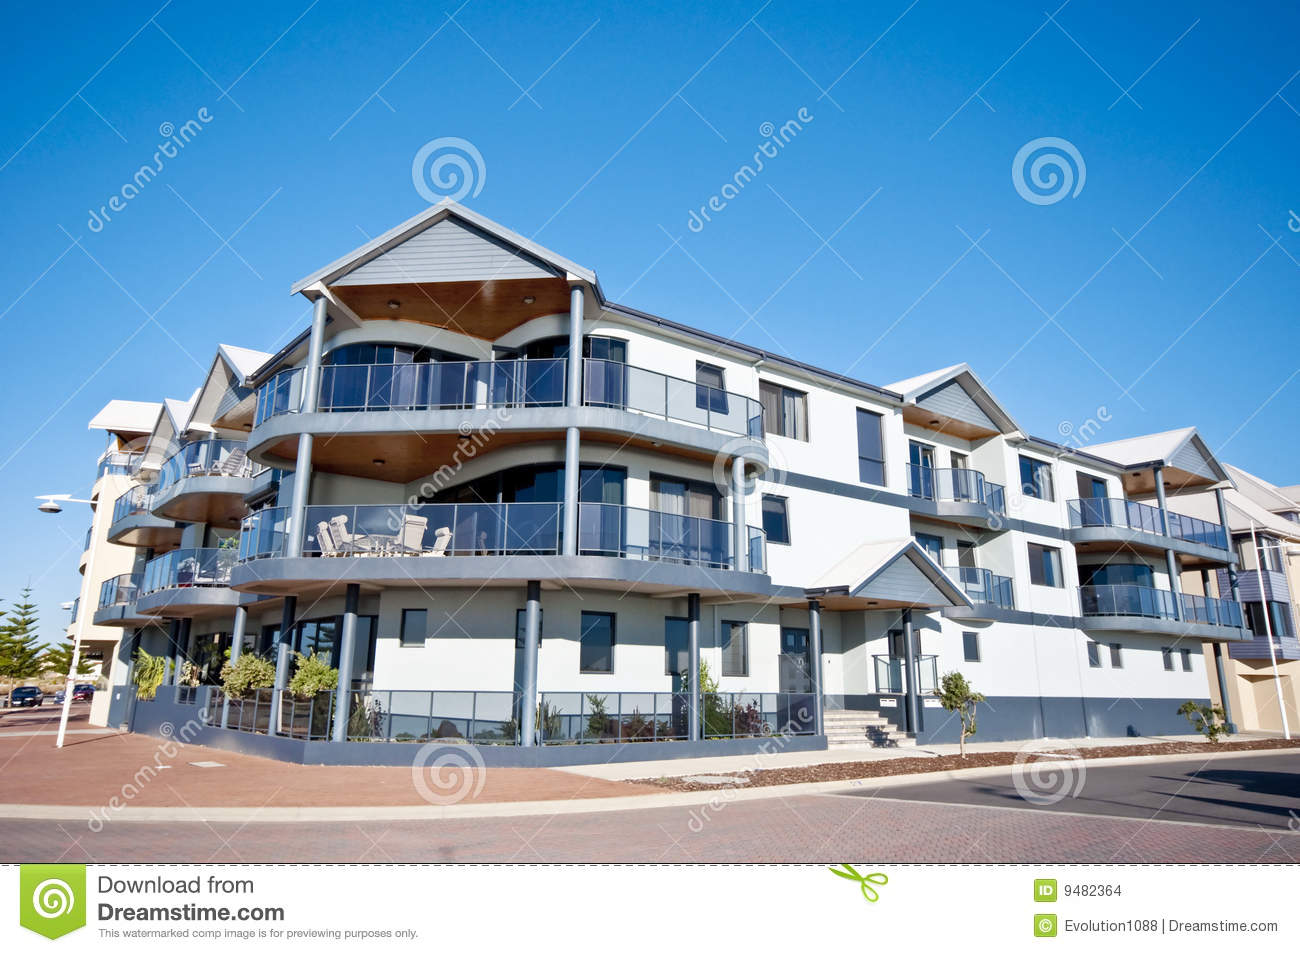 New houses for sale stock images image 9482364 for Row houses for sale